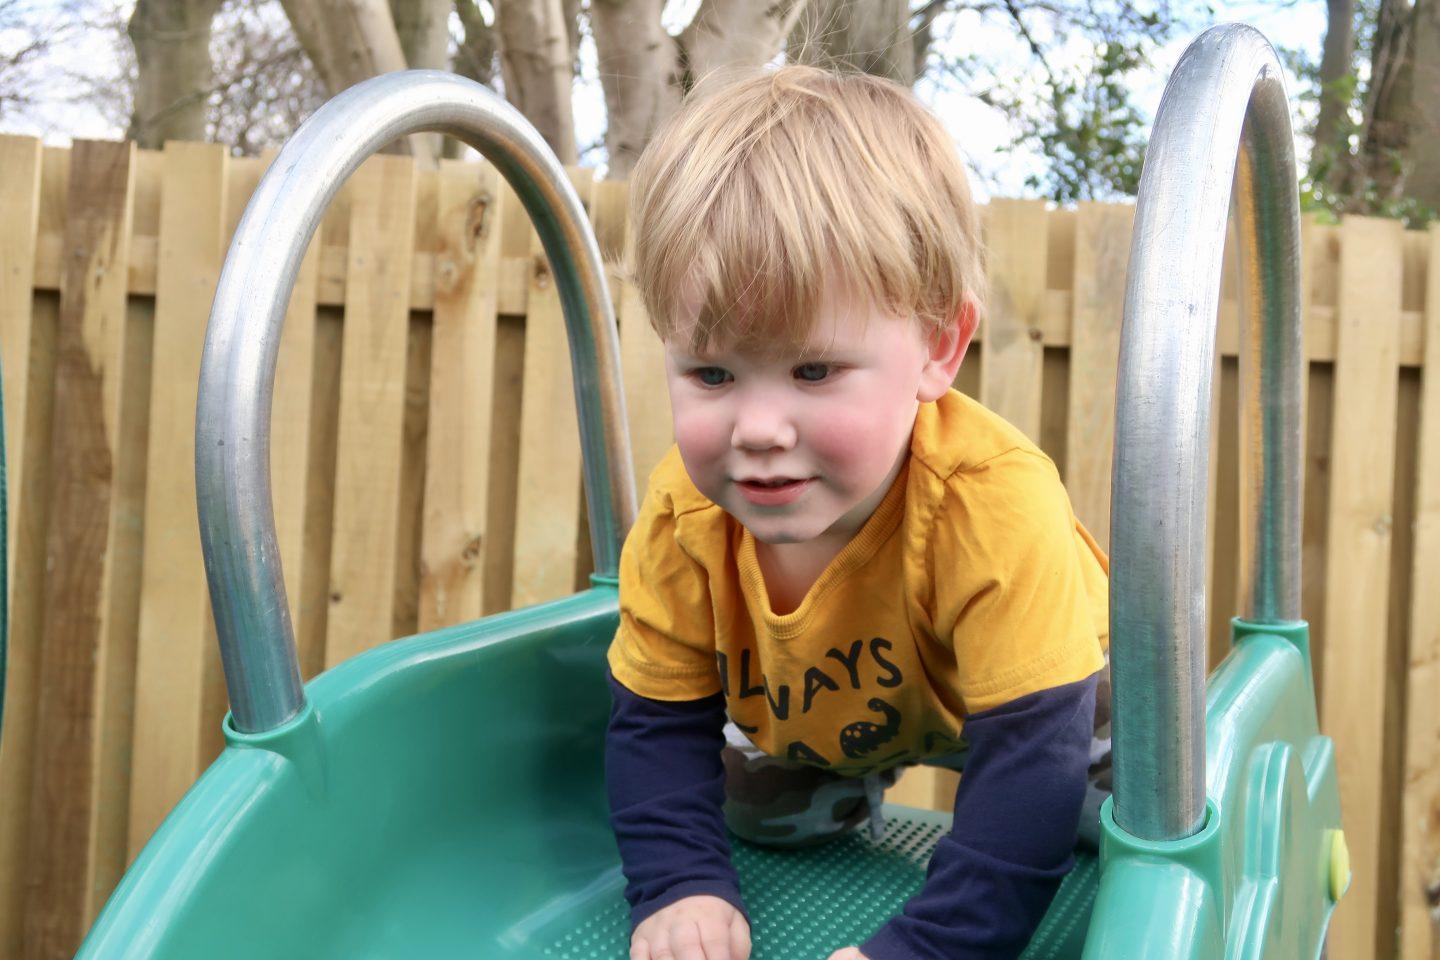 A boy at the top of a slide